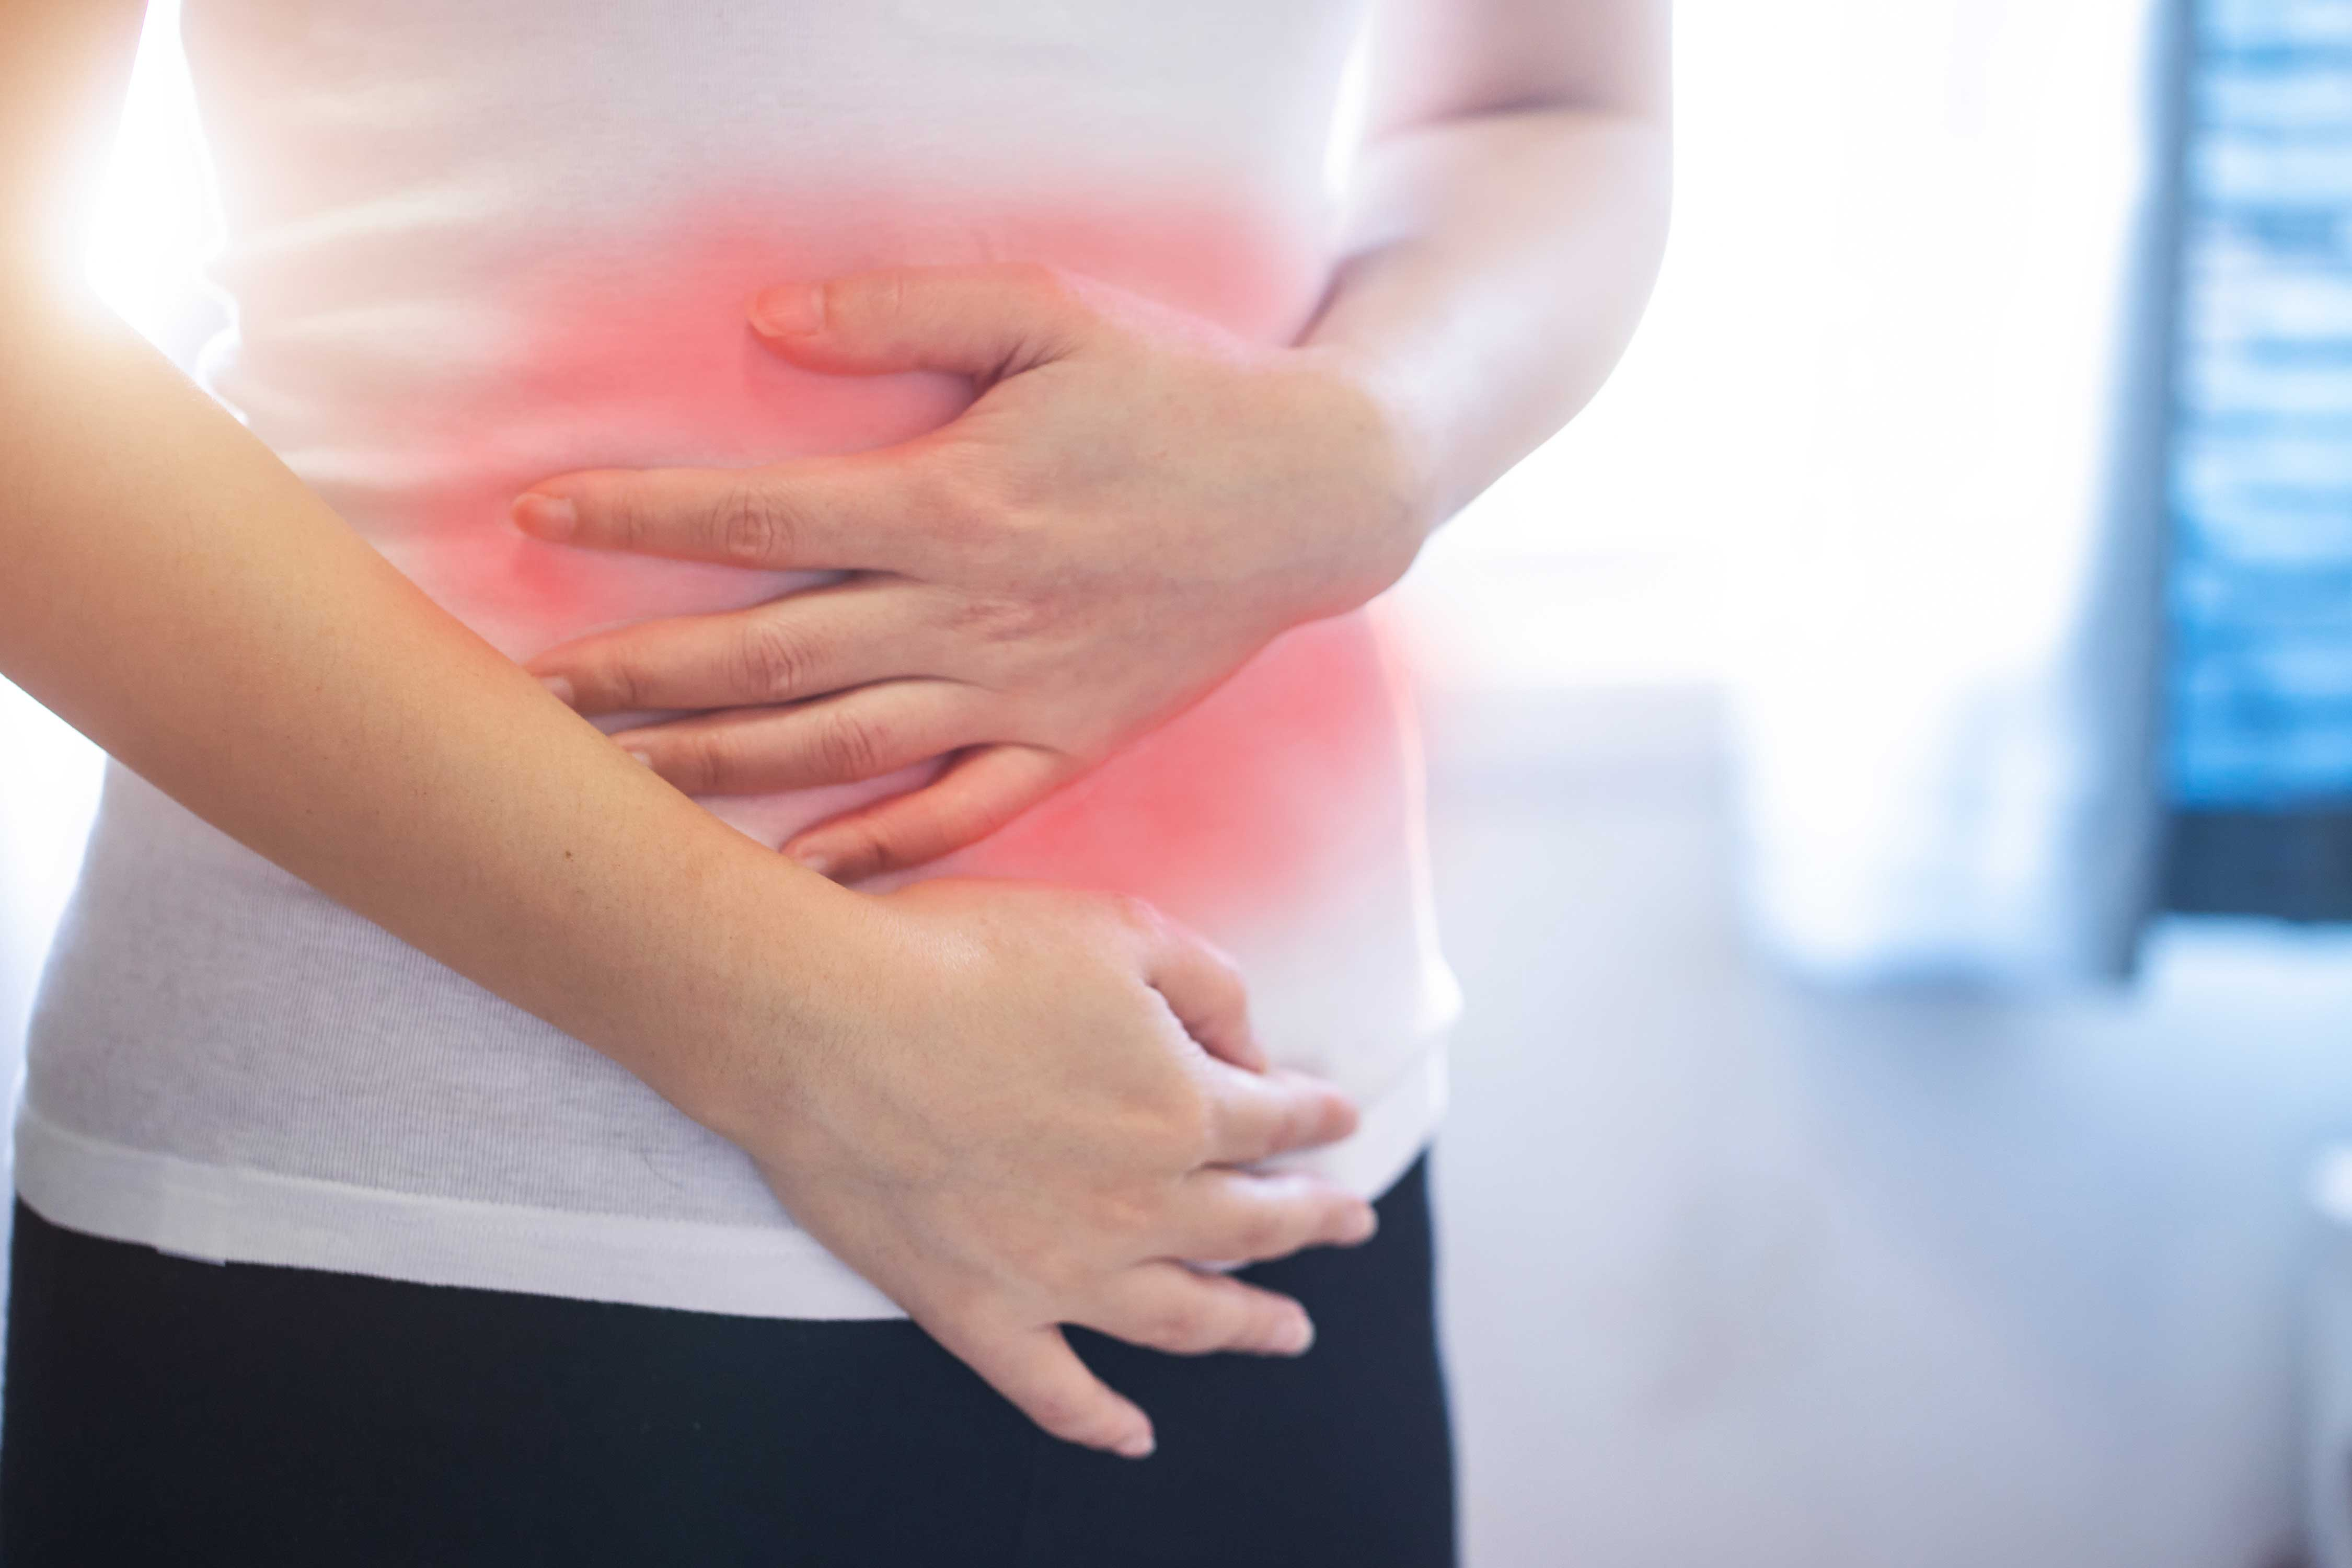 Please tell us about your IBS